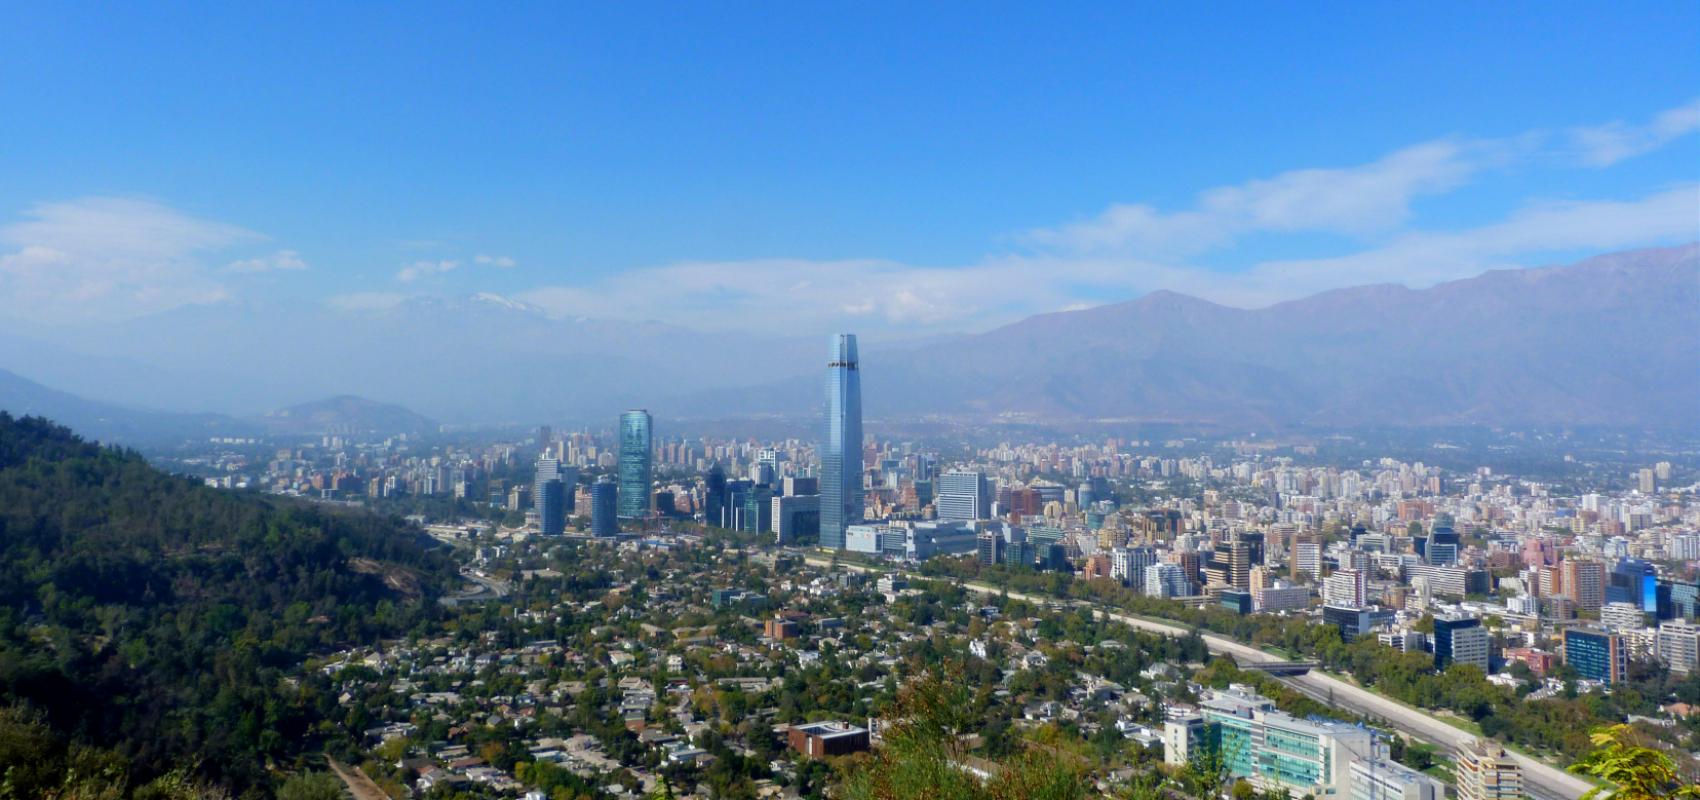 Santiago Chile panoramic overview